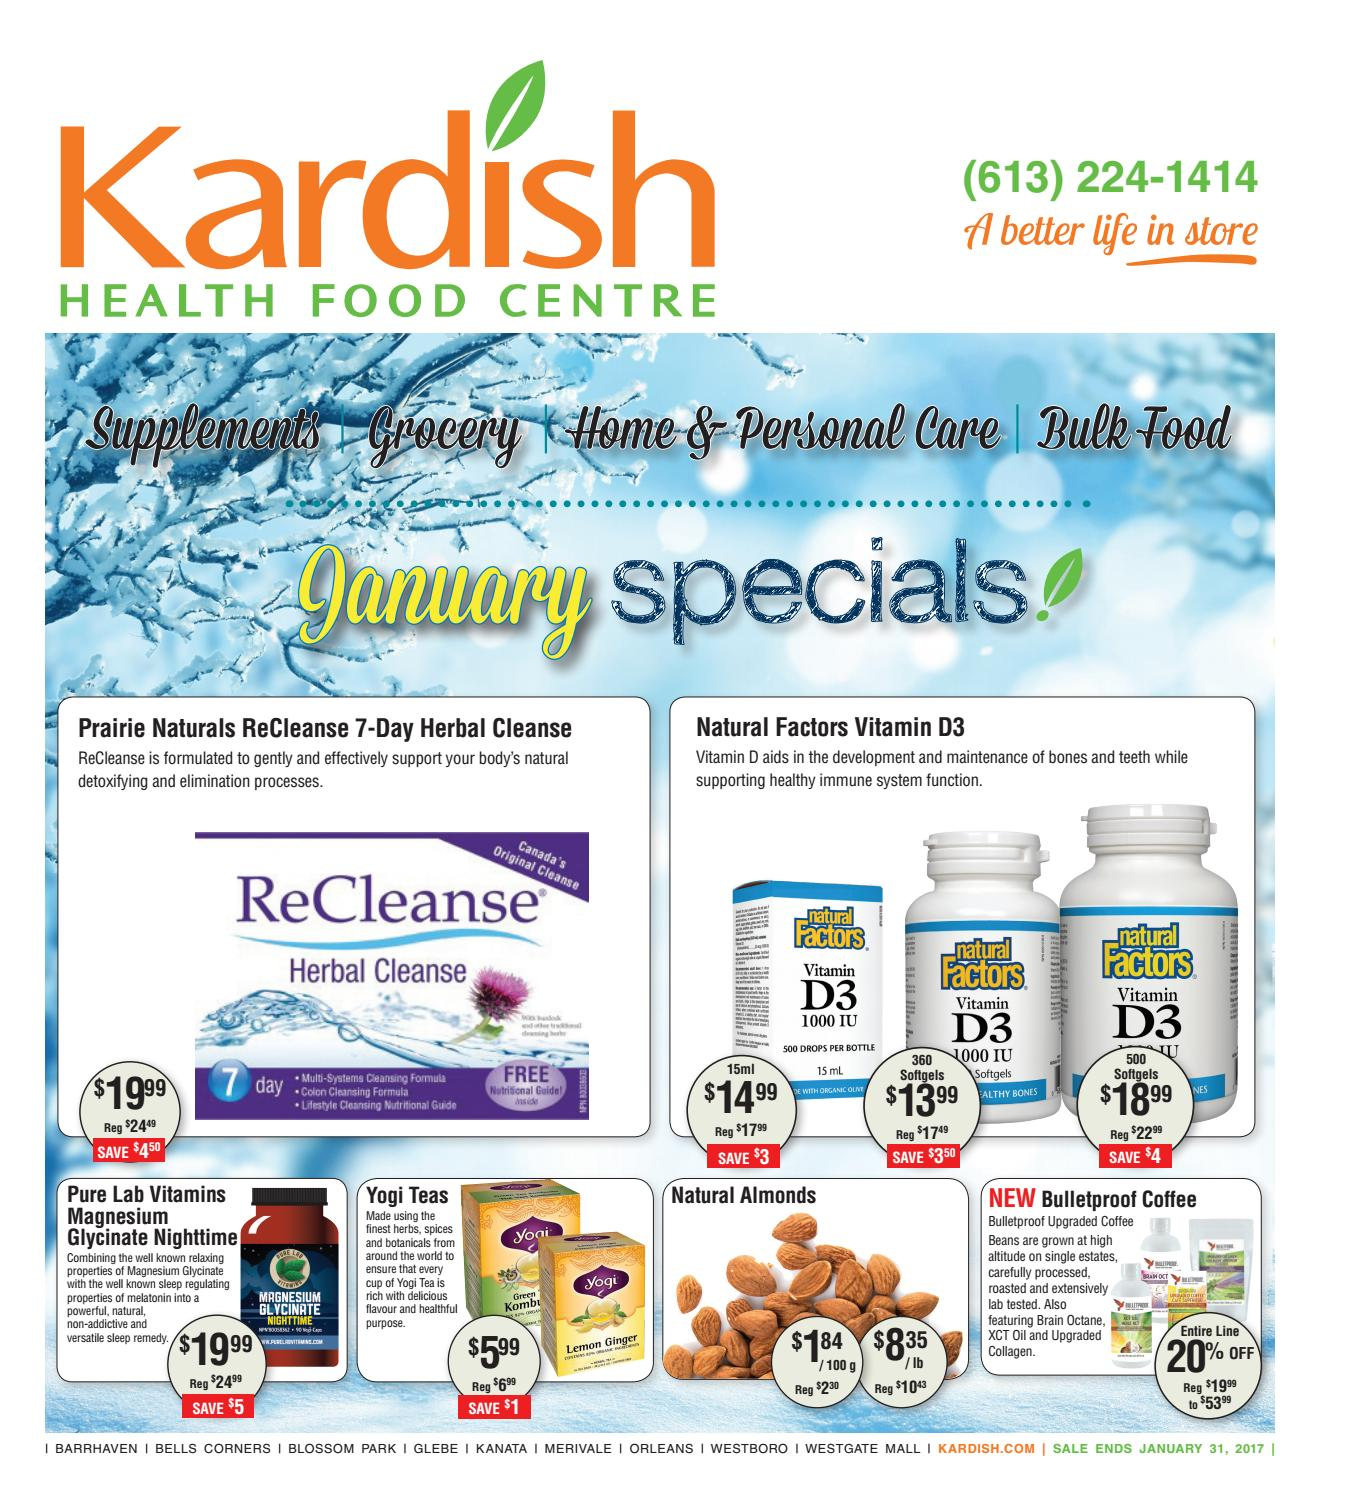 Kardish January 2017 Specials Flyer By Health Food Centre Udos Oil 369 Omega Issuu